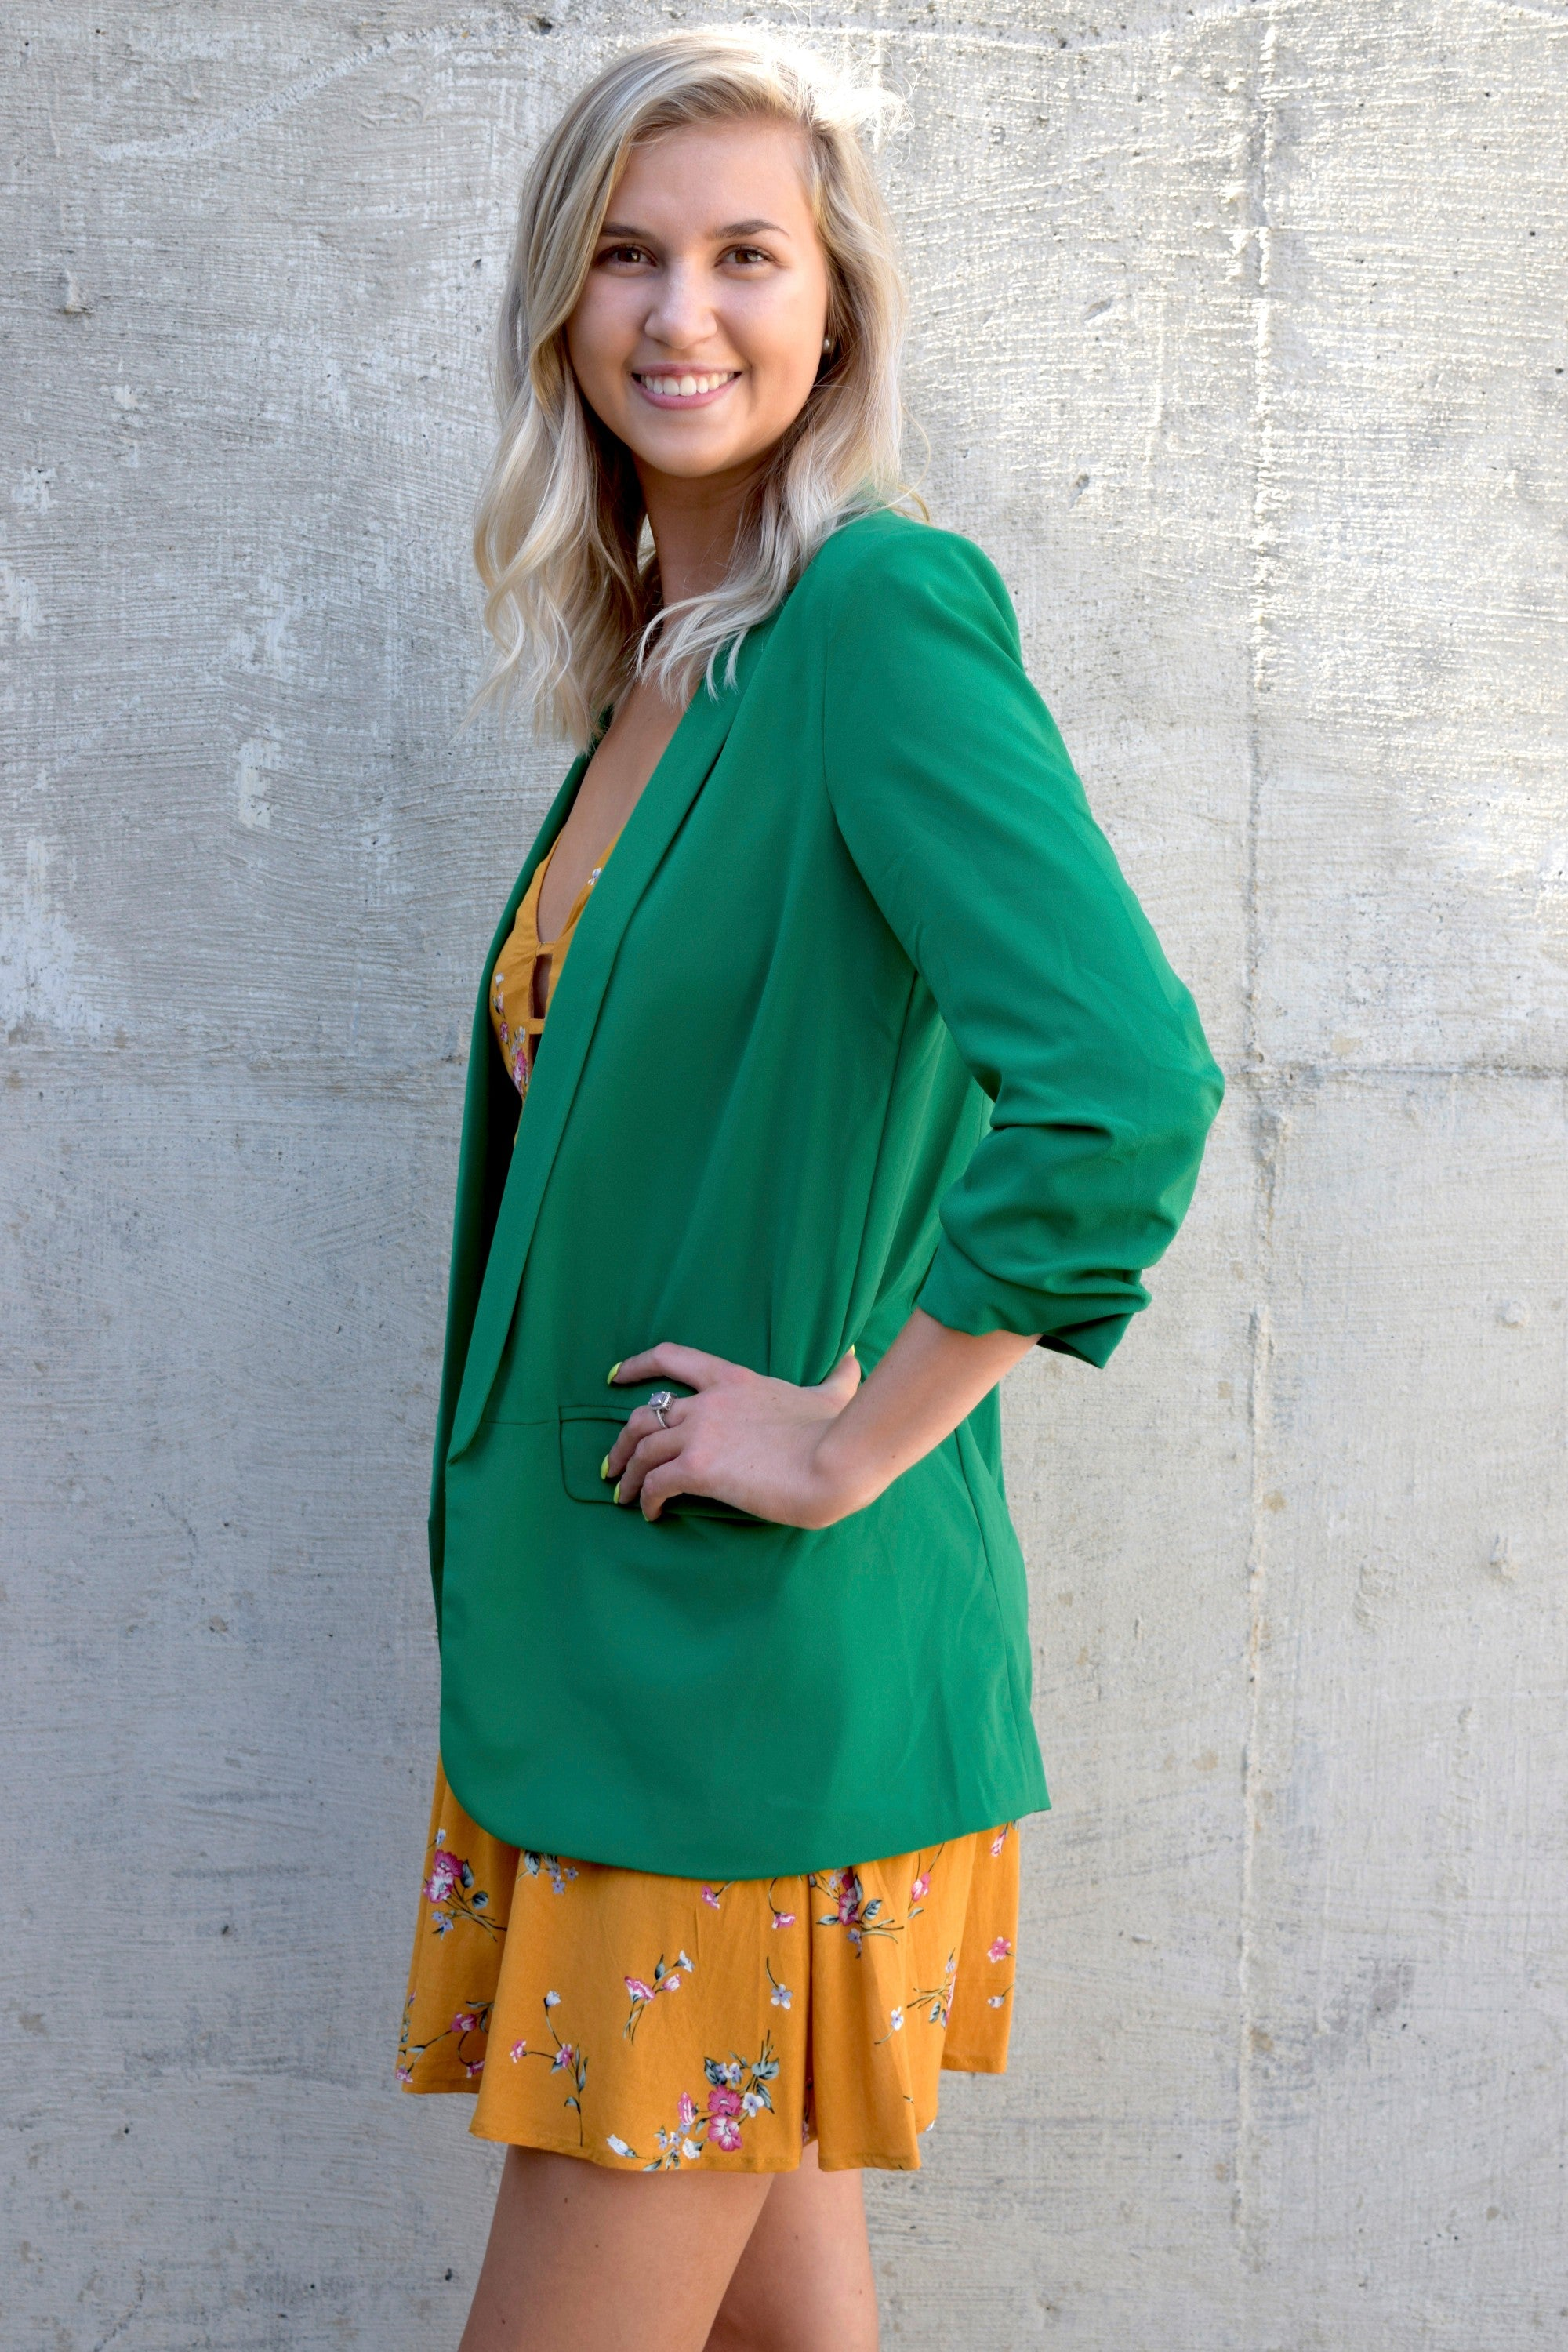 SHE MEANS BUSINESS BLAZER: GREEN